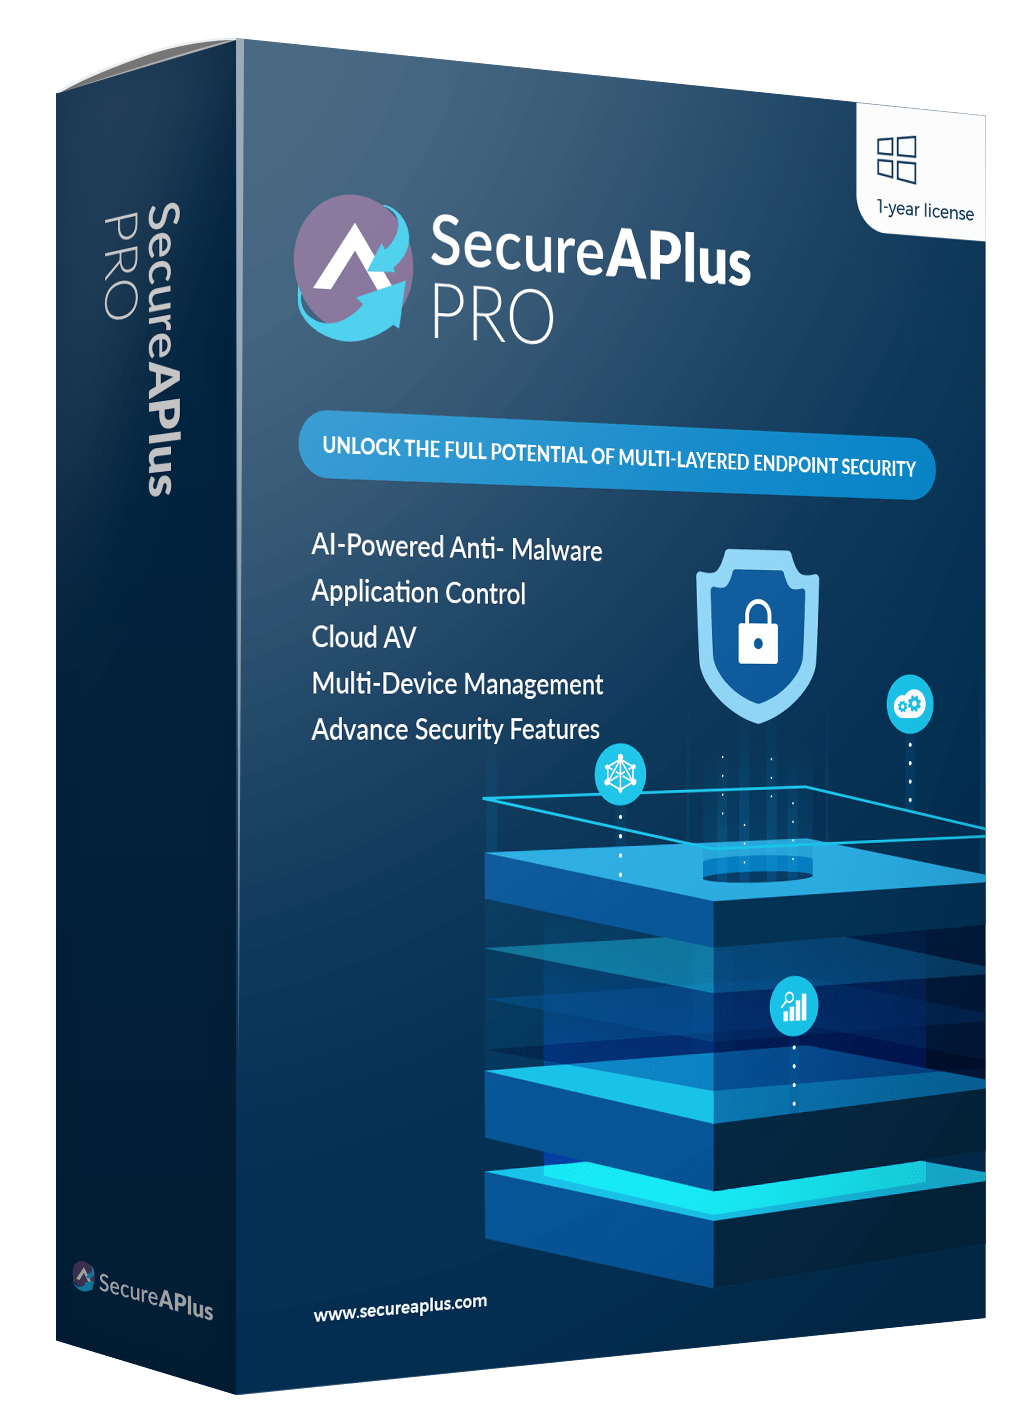 SecureAPlus Antivirus Software review by musicphotolife.com Singapore tech blog